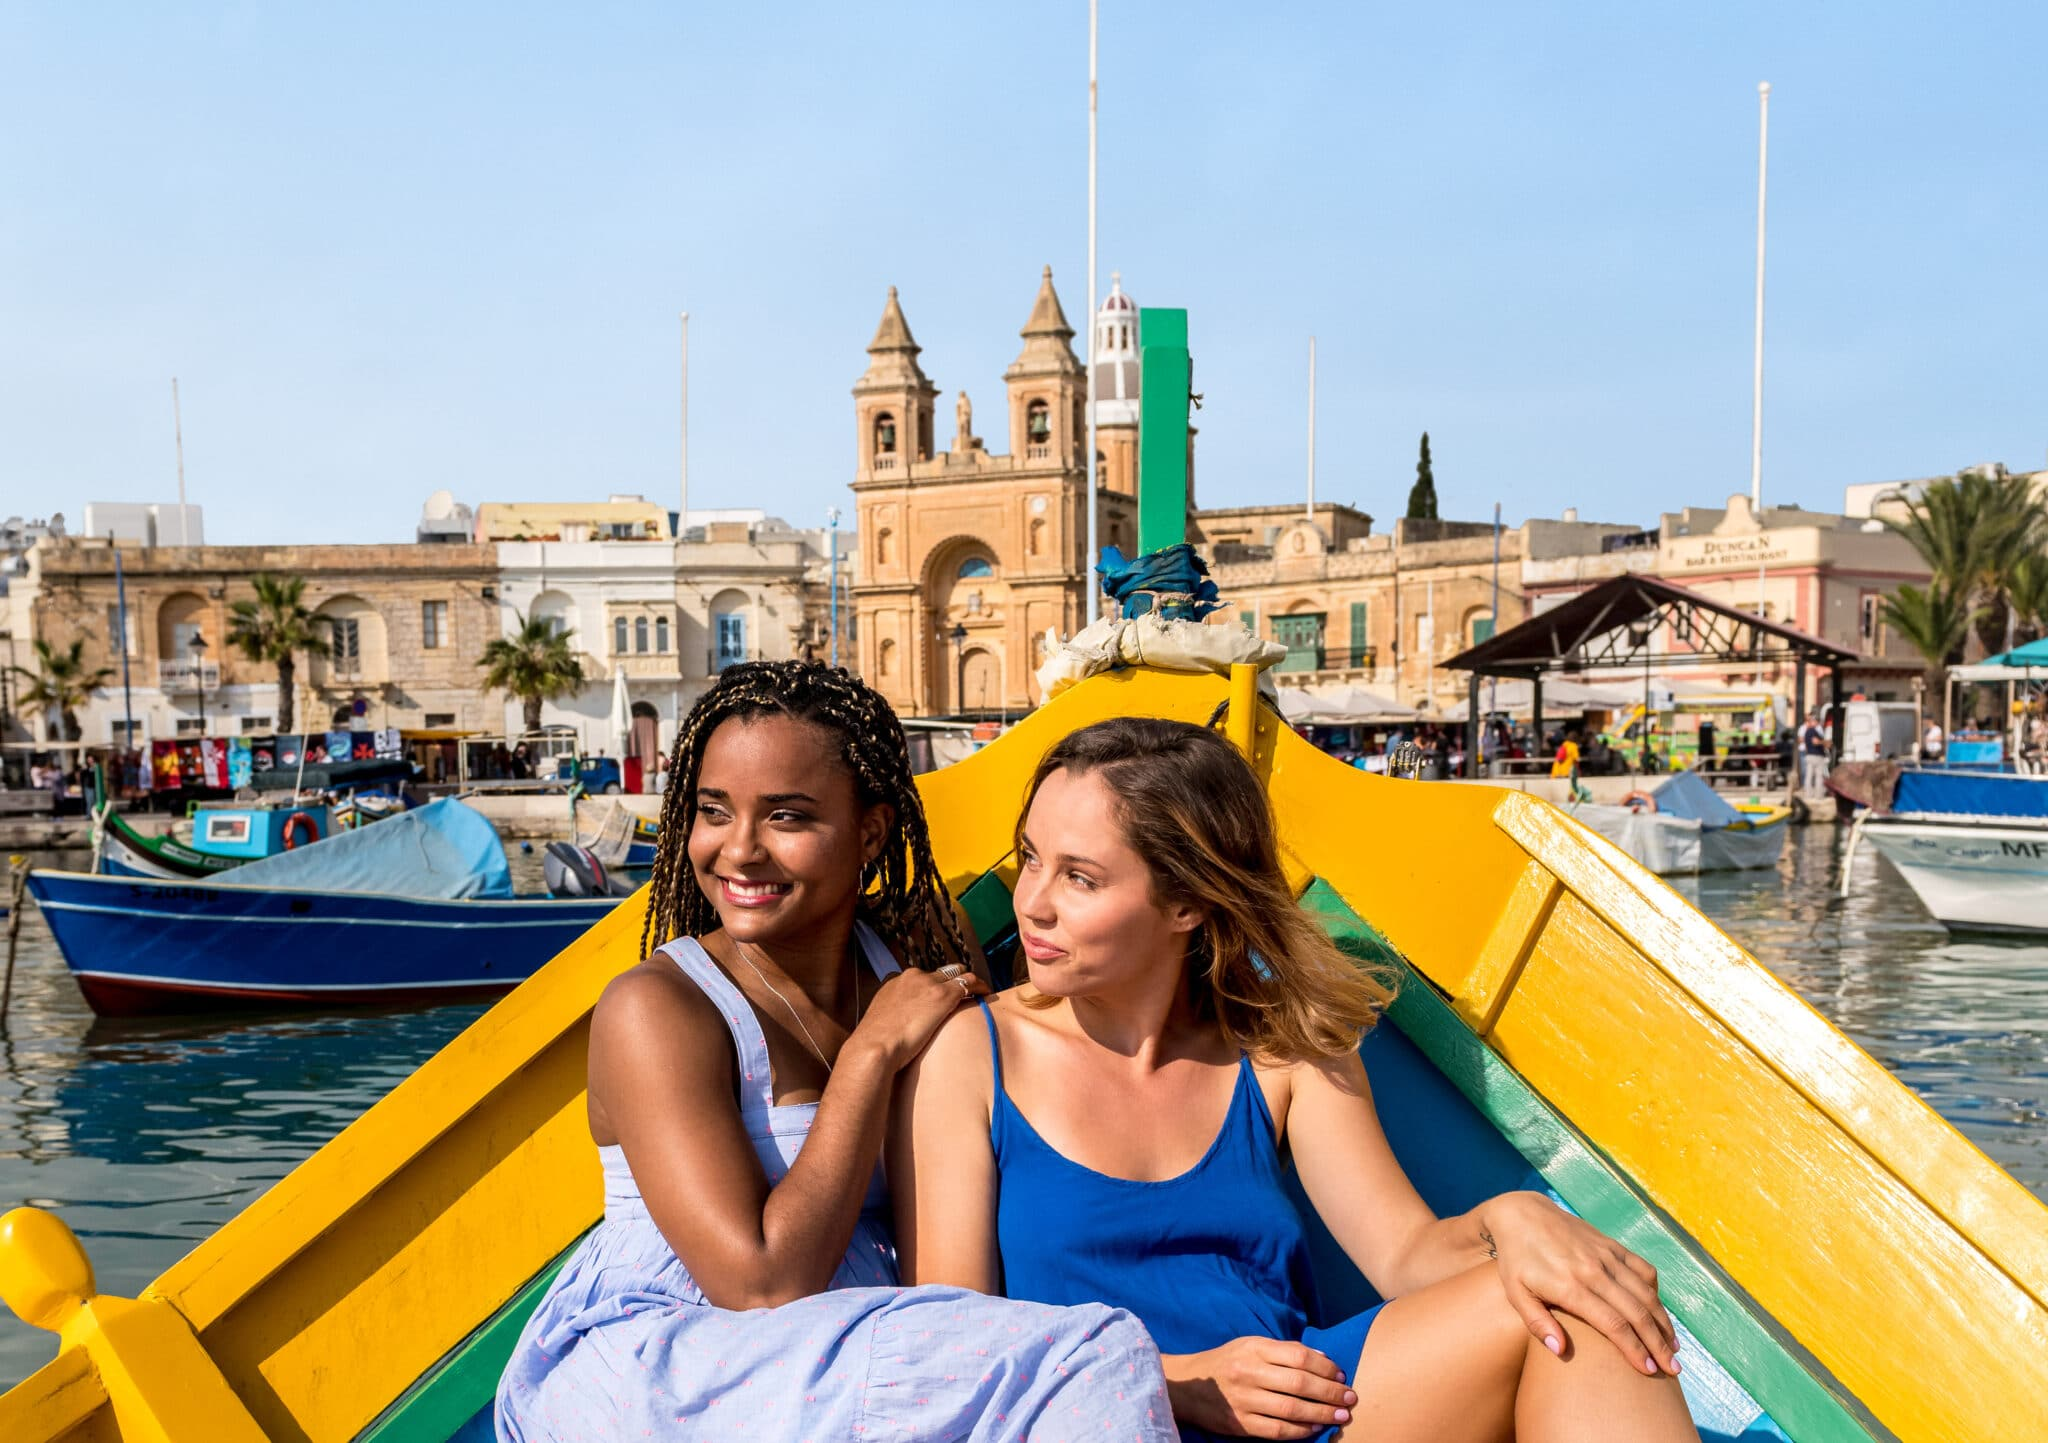 5 irresistible reasons why Malta should be top of your LGBT+ travel list